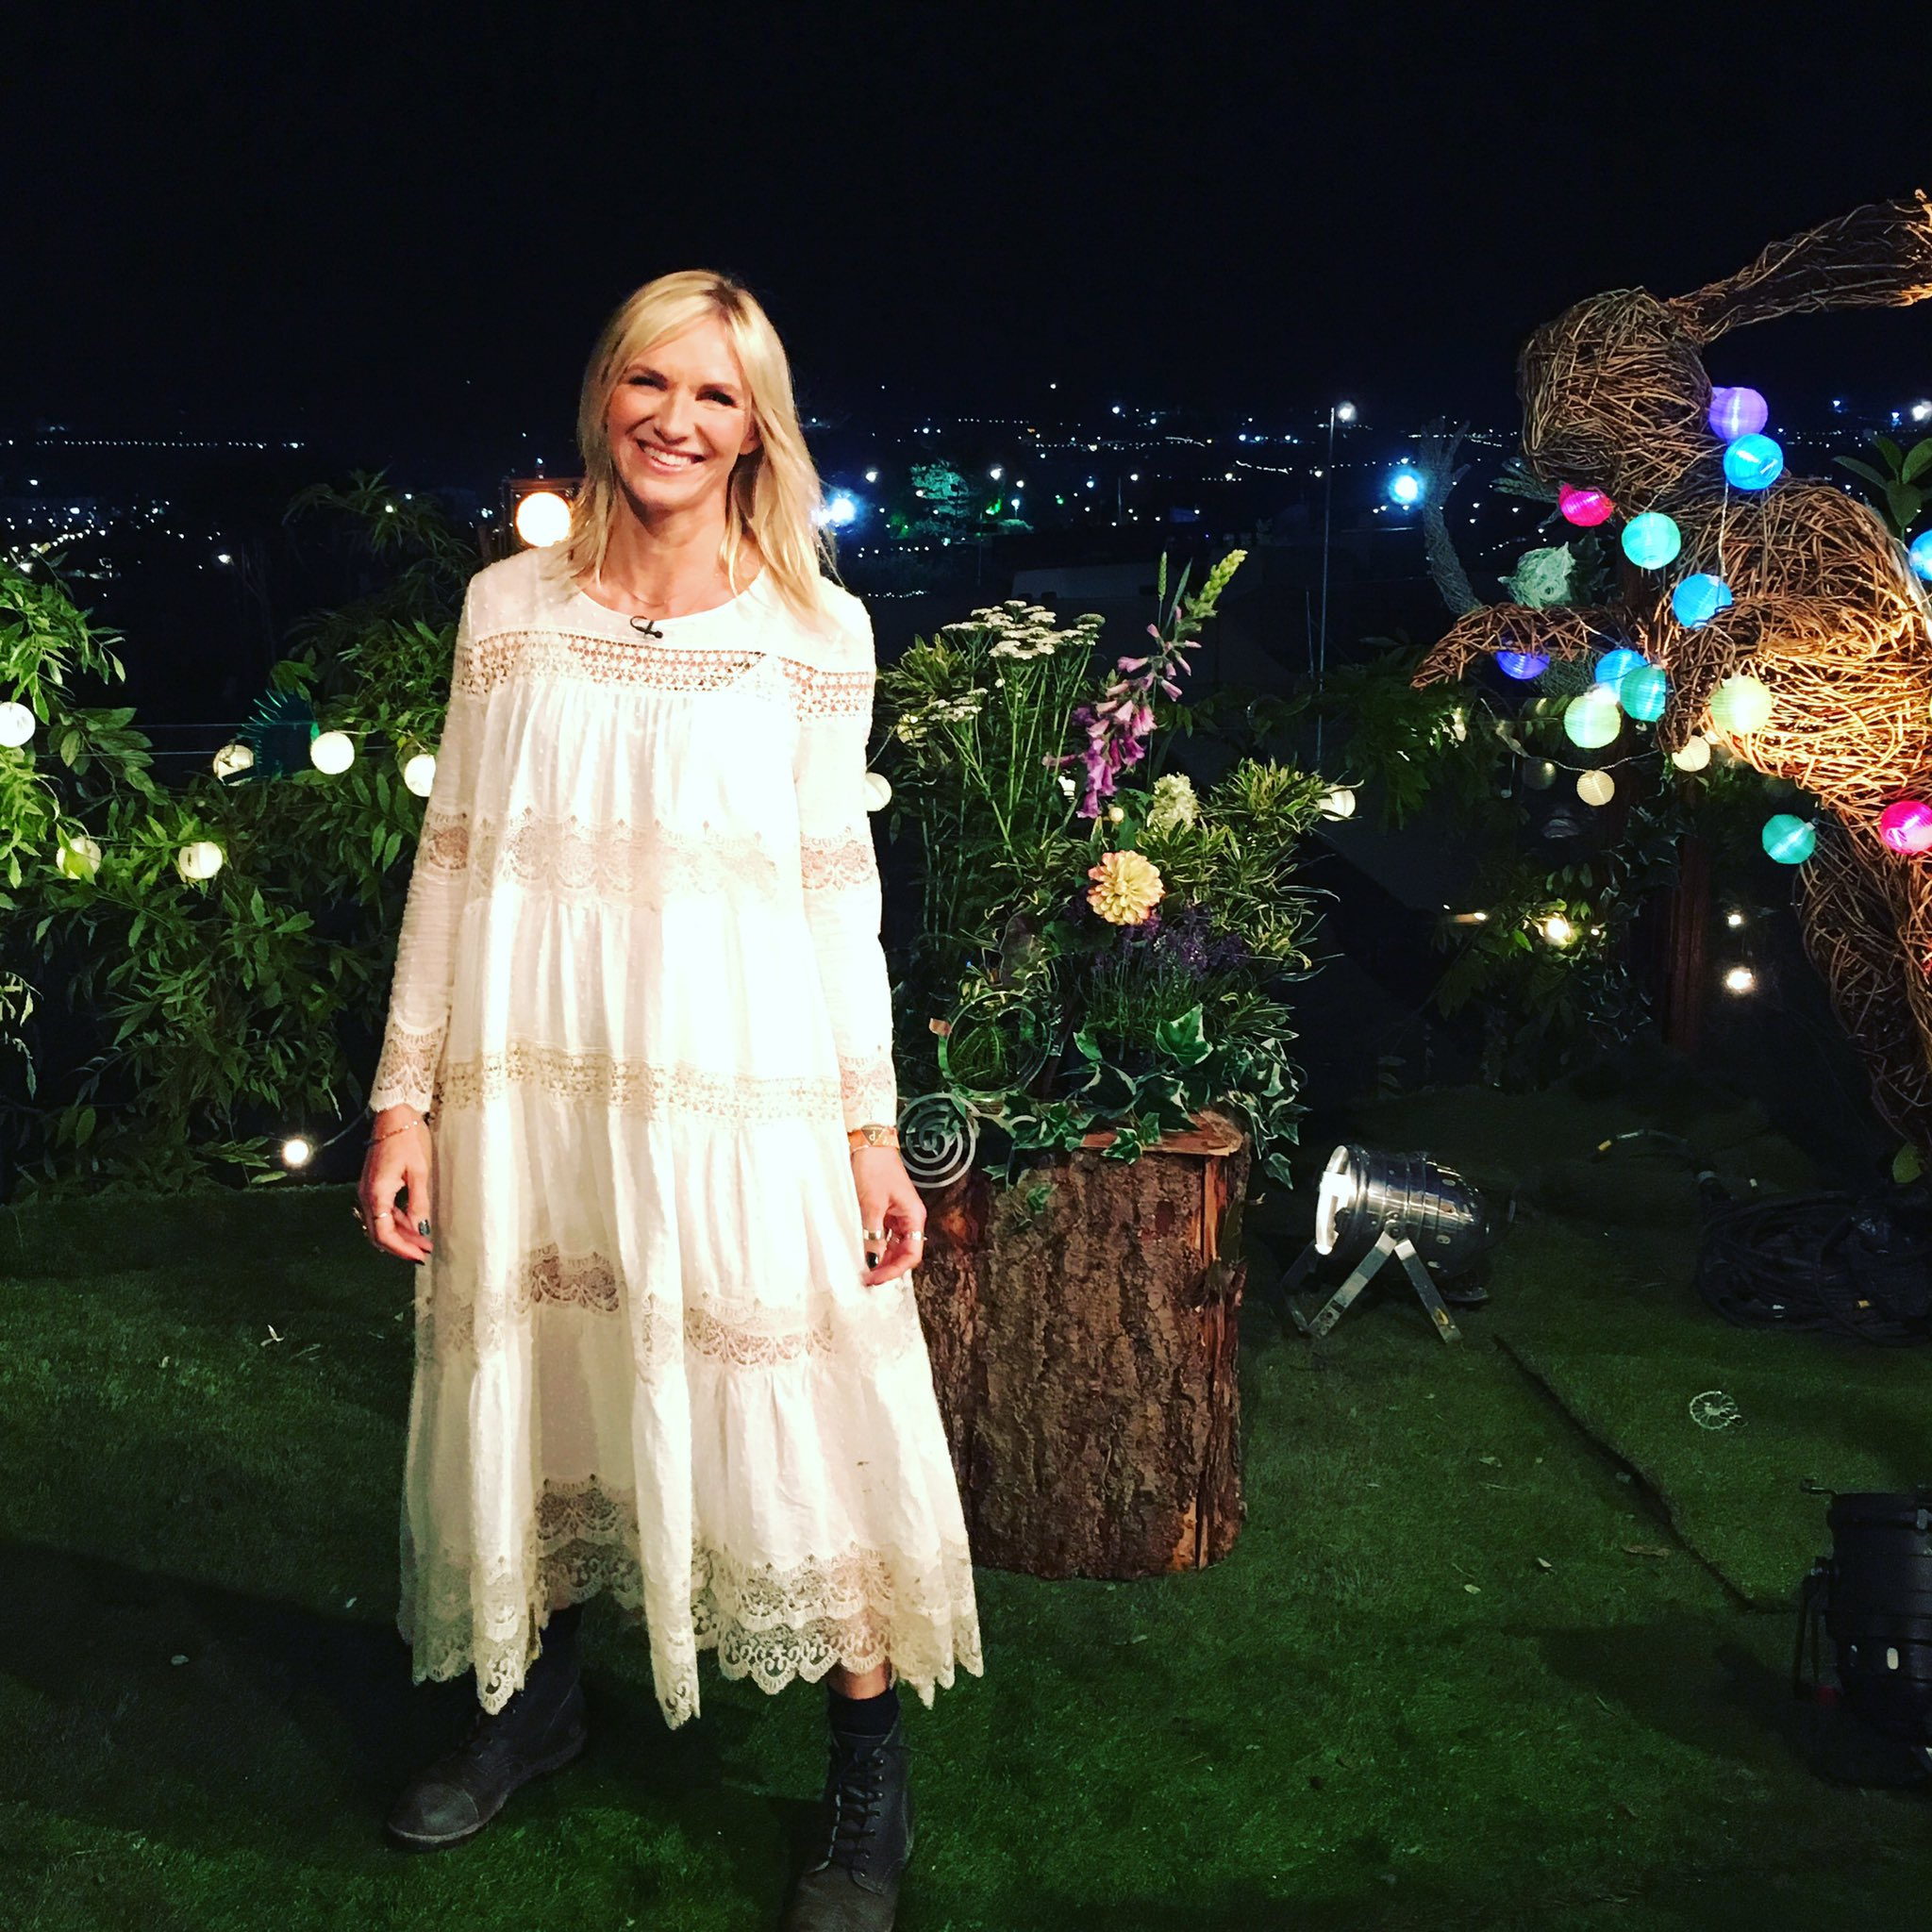 A few people asking about this @GlastoFest dress. It's by @Mes_Desmoiselles & is very lovely & floaty to wear https://t.co/CbUugGnFZ7